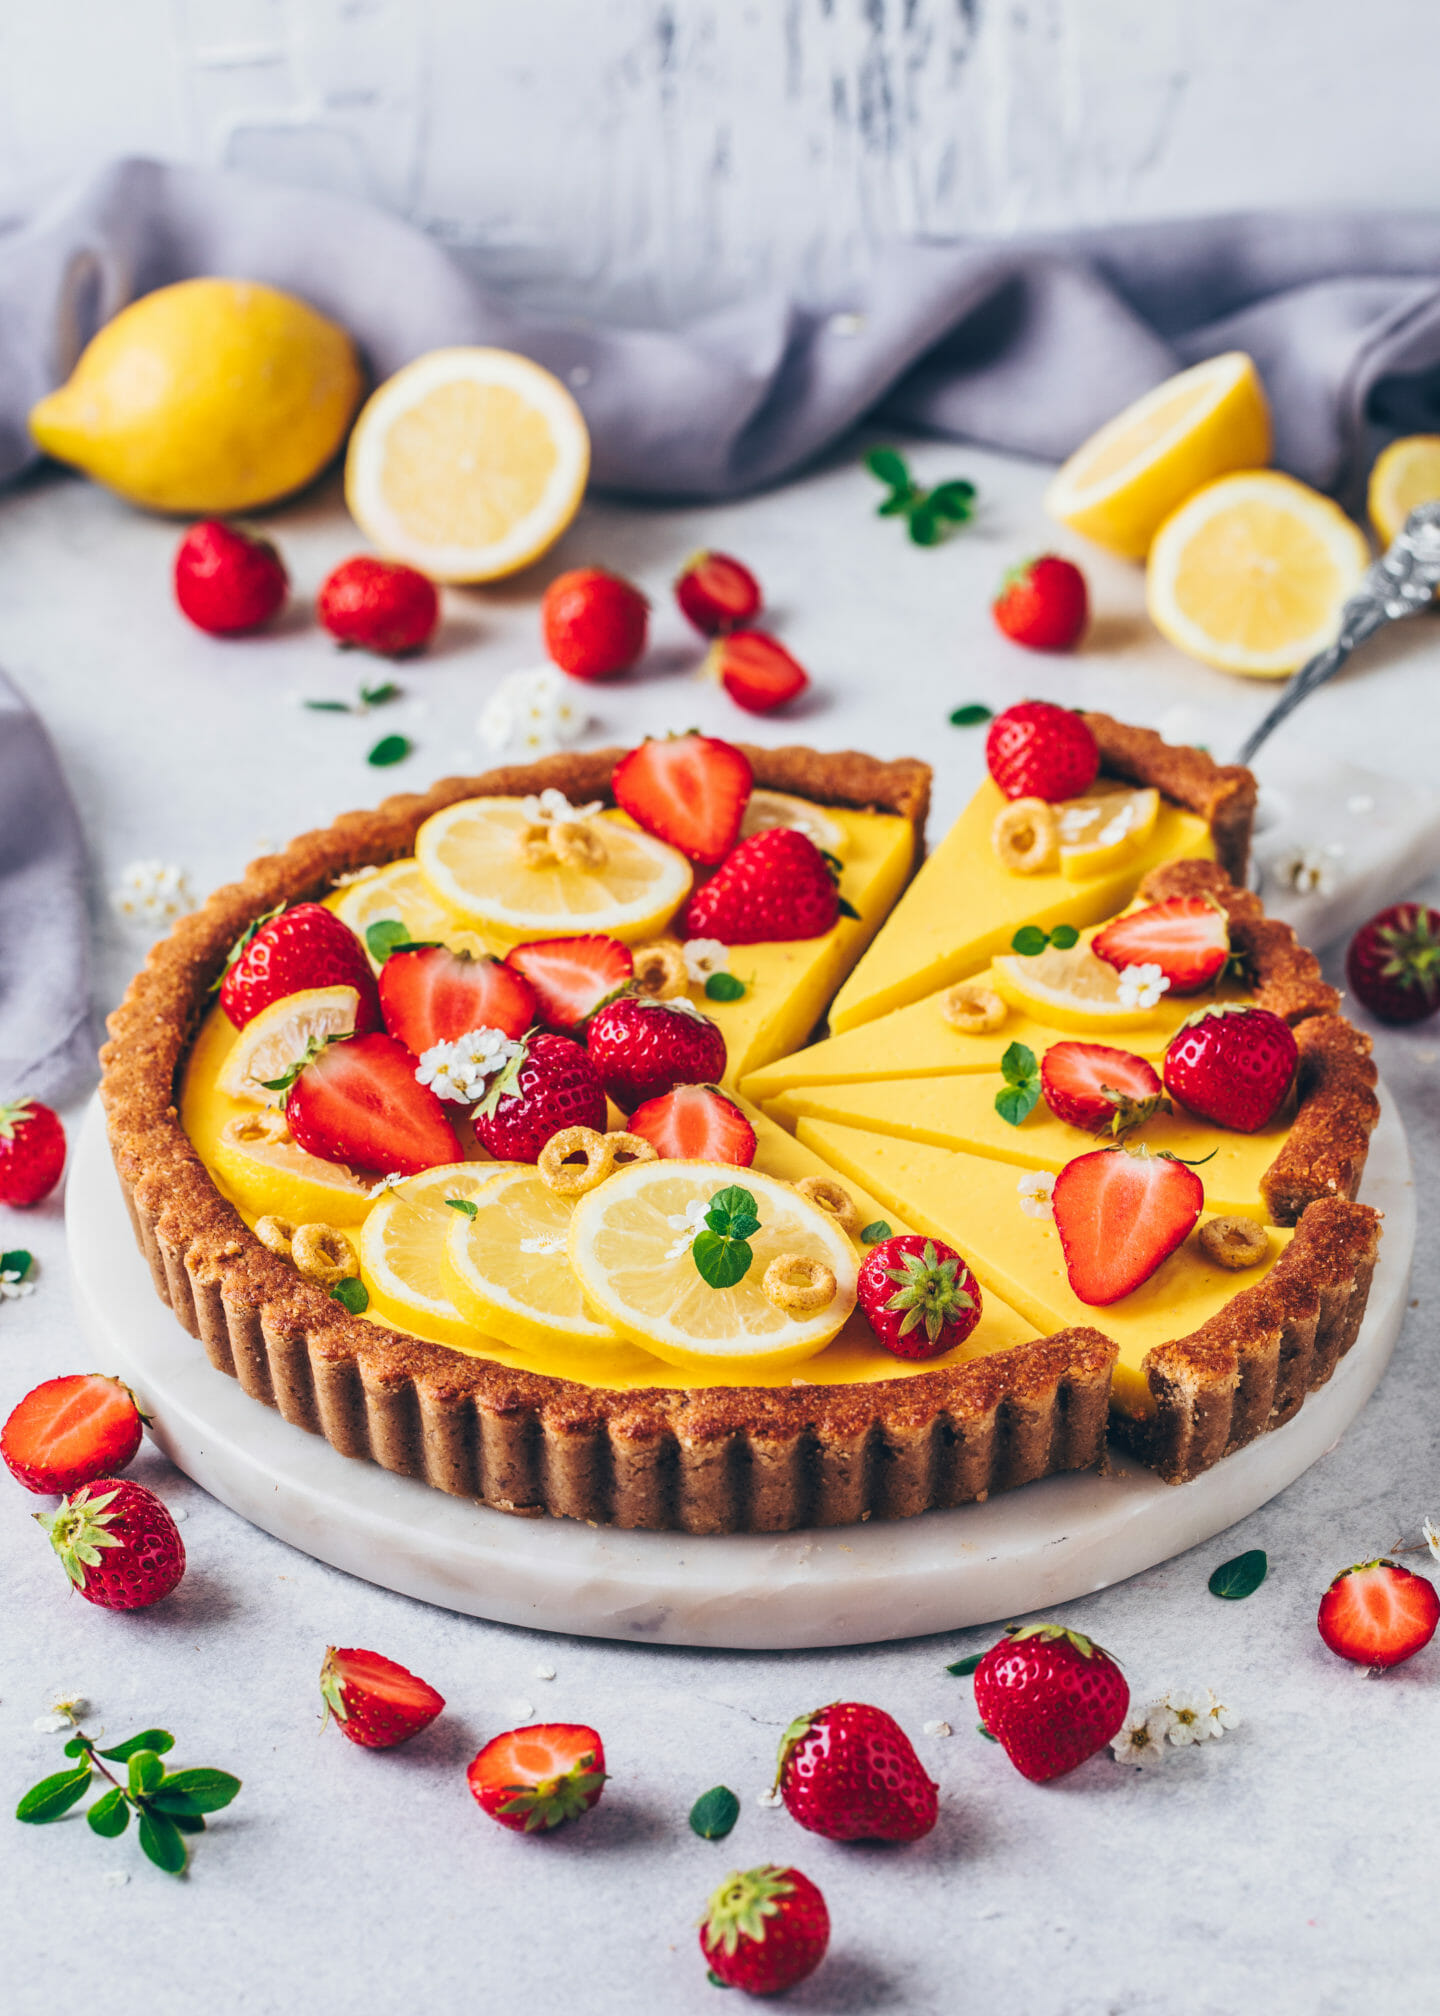 Vegan Lemon Tart with Strawberries (Easy, Gluten-free, No-Bake)